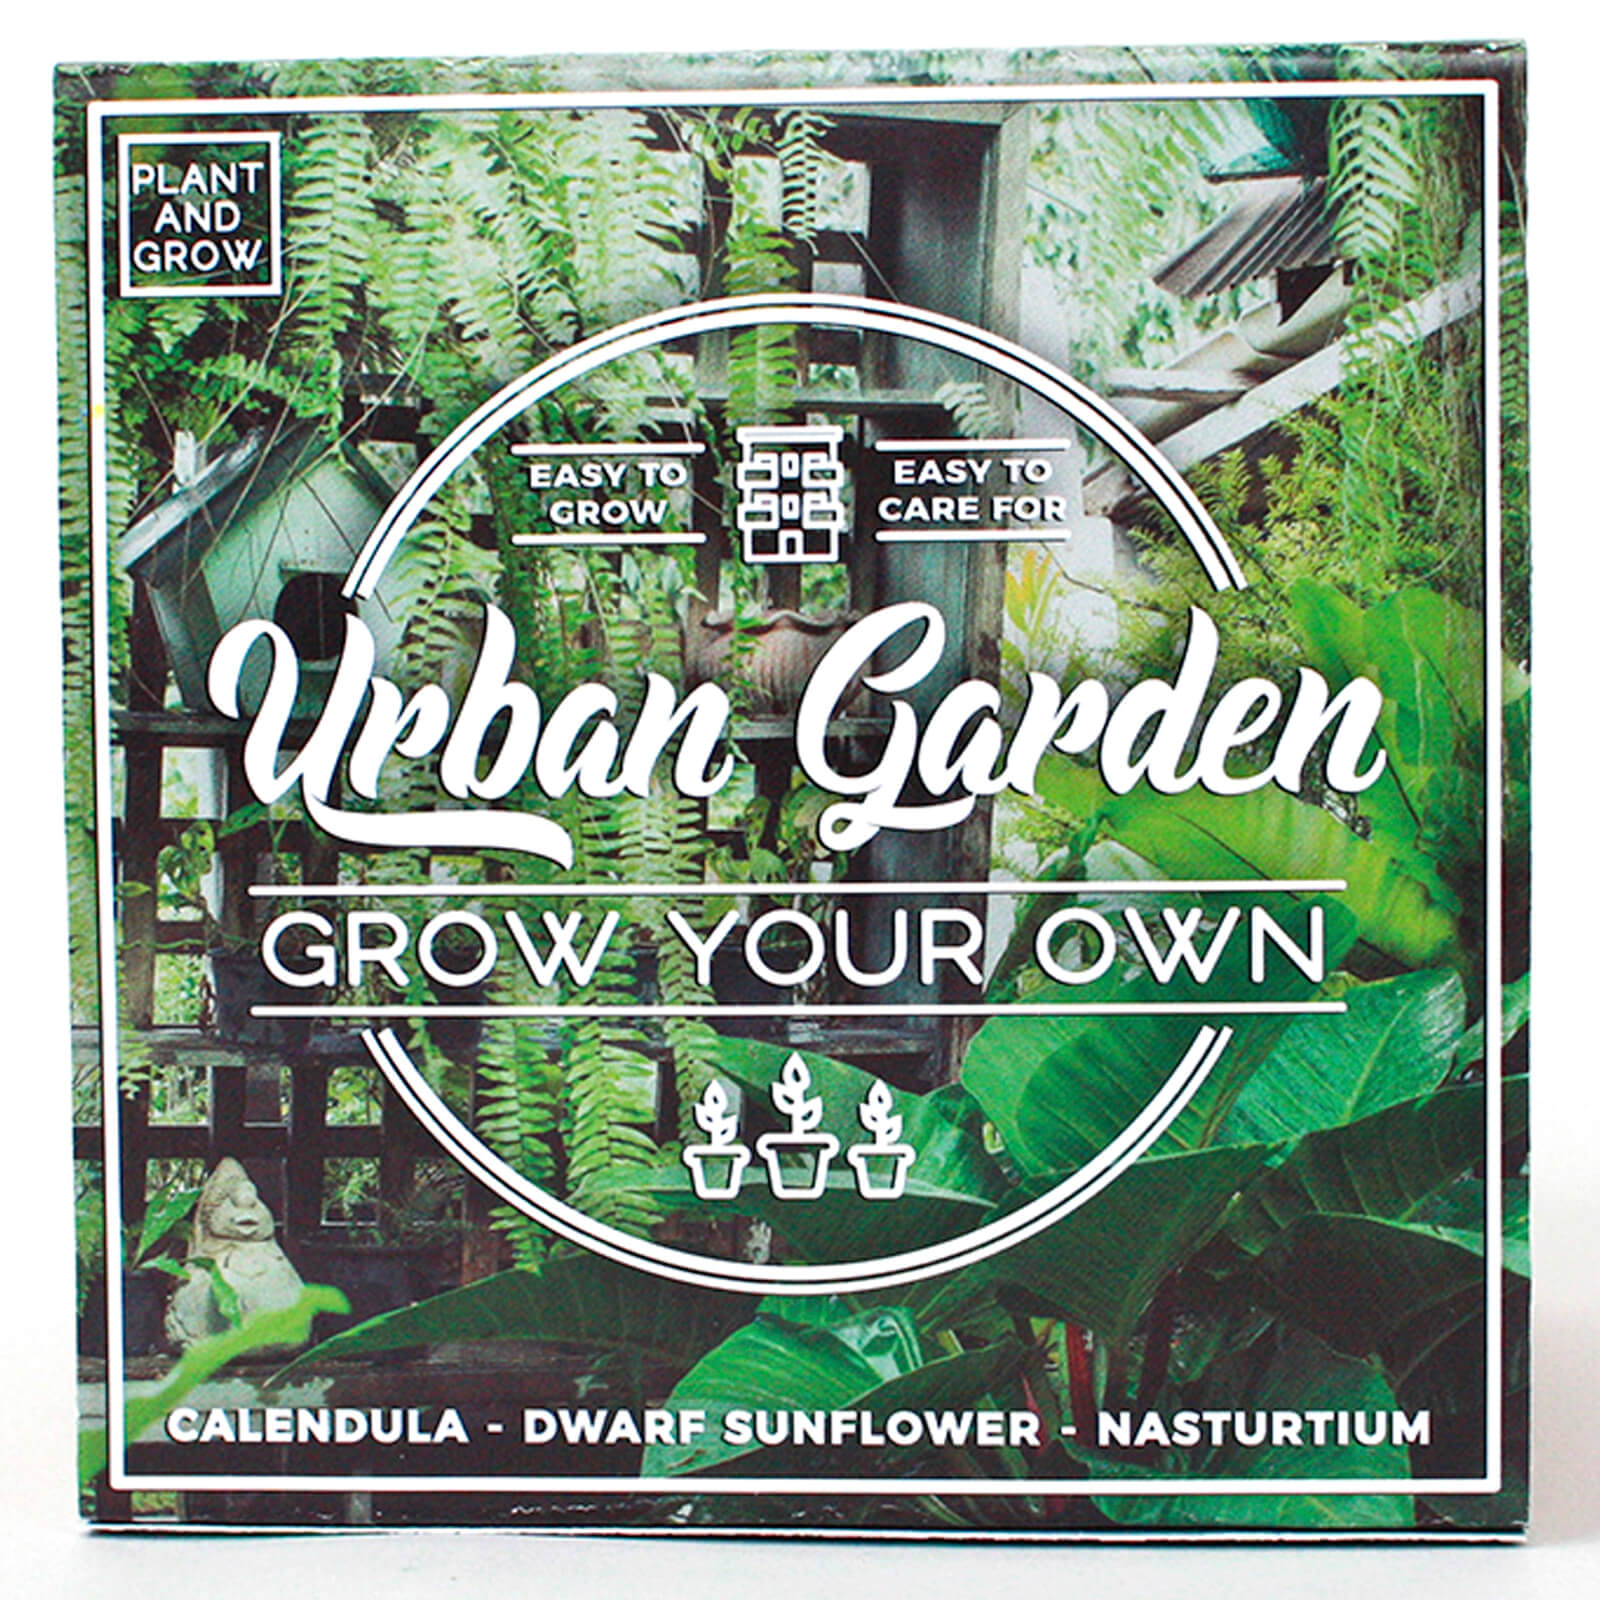 Grown Your Own Urban Garden